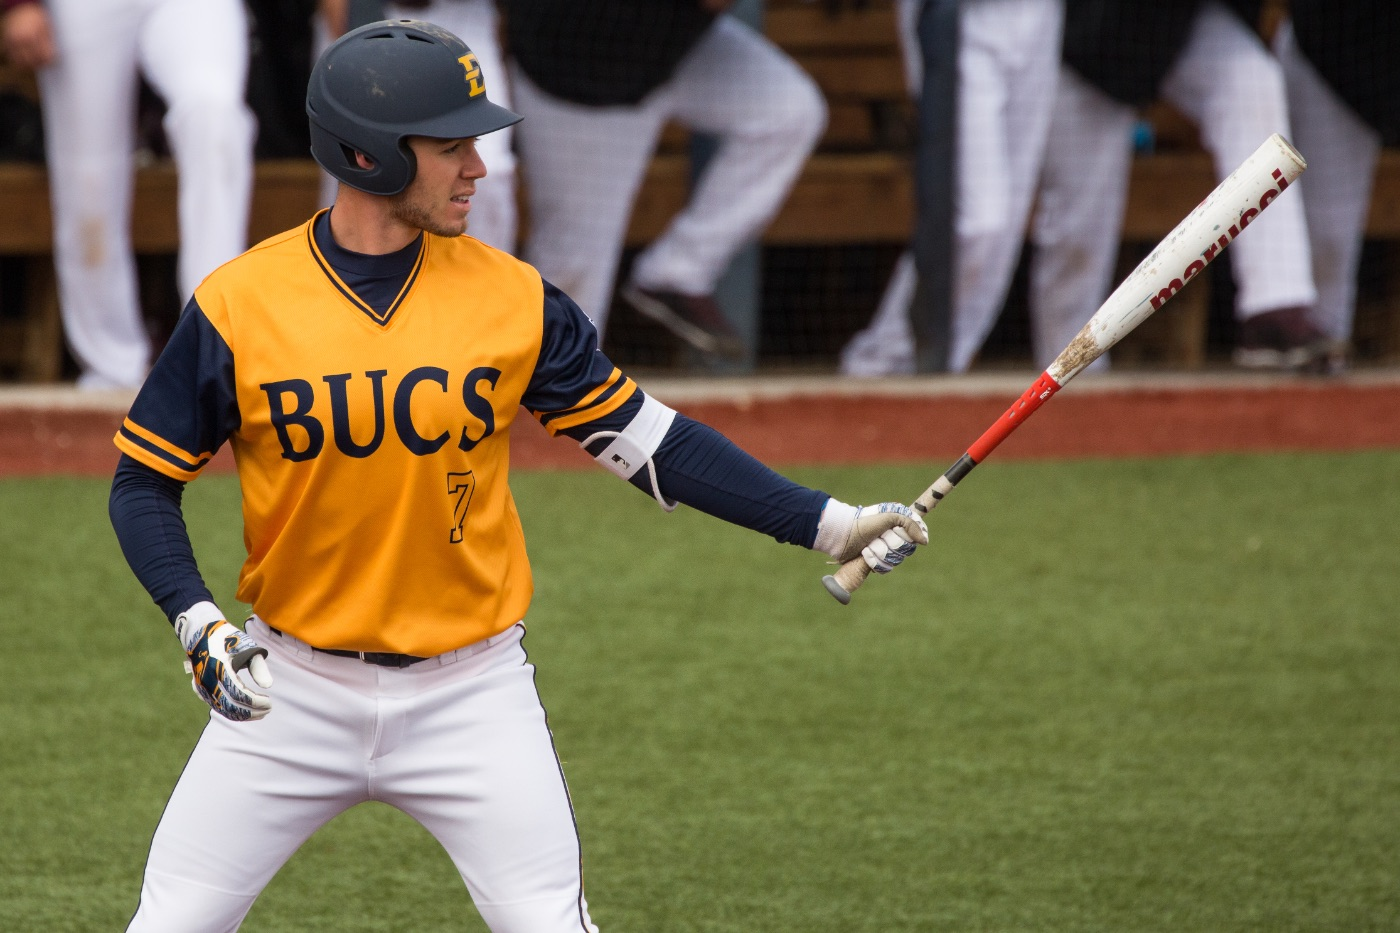 Longley powers Bucs past Samford in conference opener